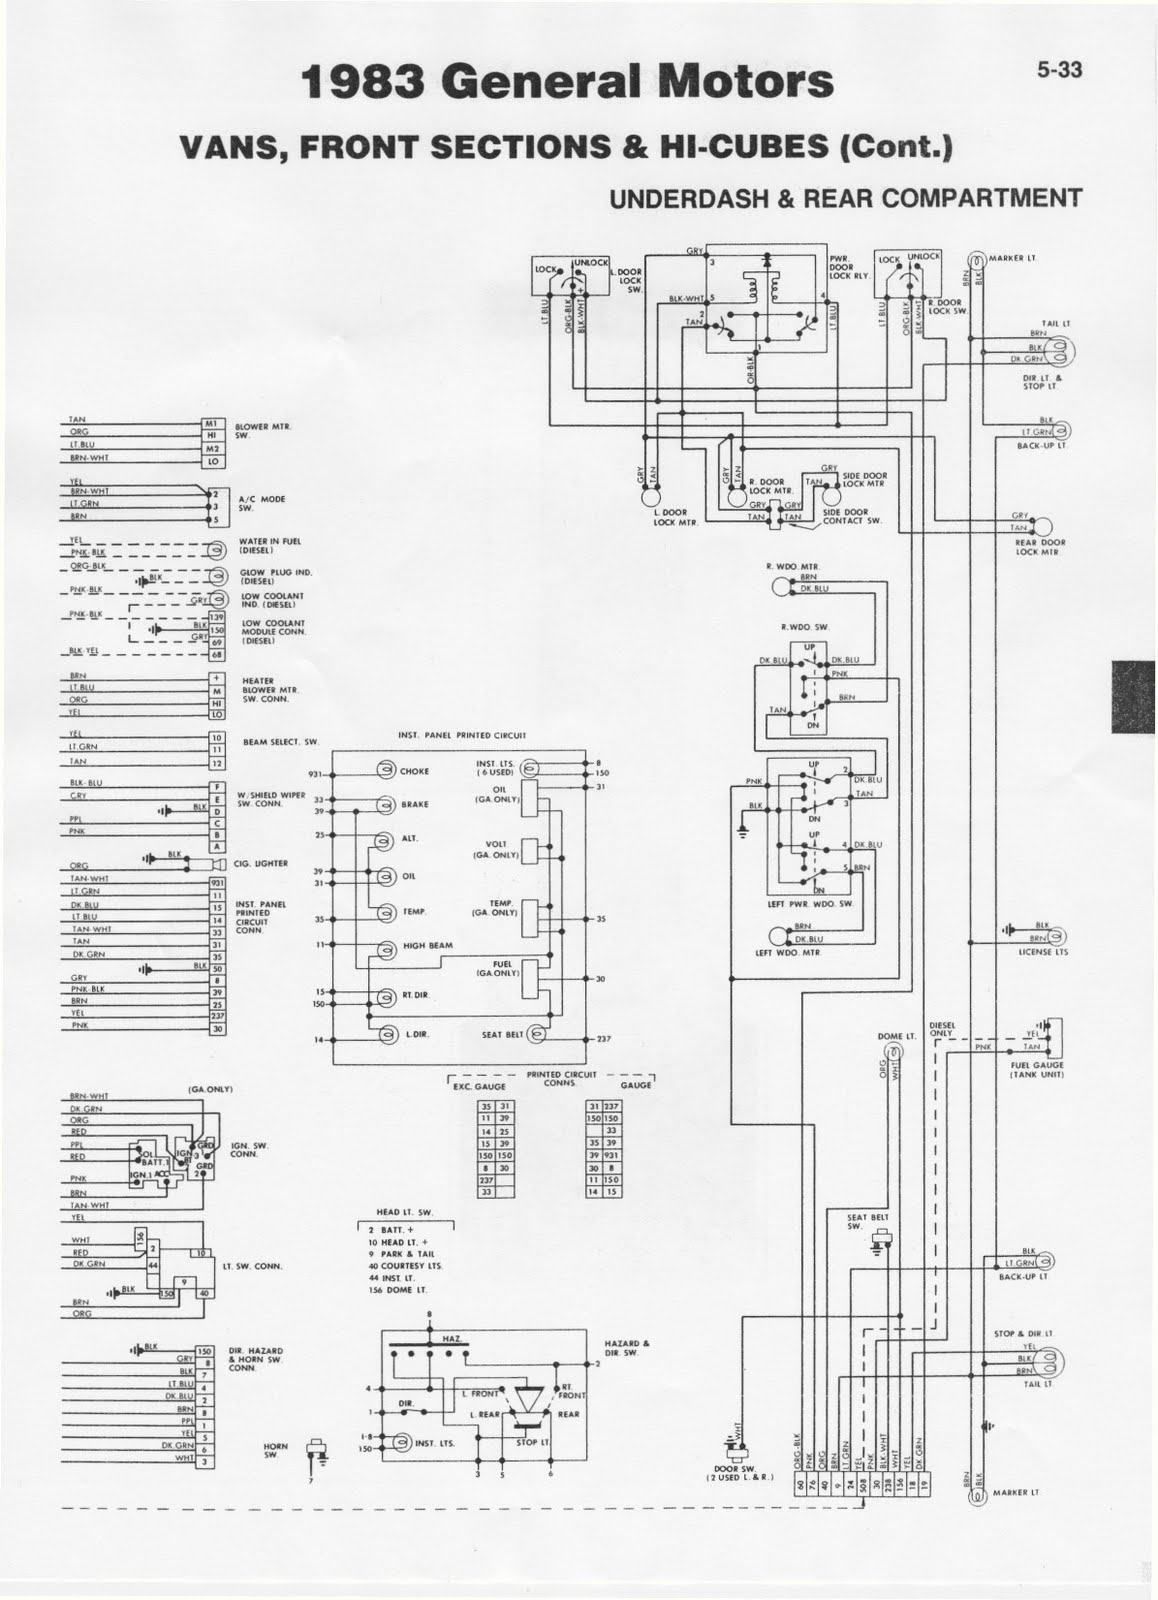 1988 fleetwood rv battery wiring diagram fleetwood rv Battery Isolation Solenoid Wiring Diagram On the 2001 National Tradewinds Wiring Diagram for a Coach Batteries